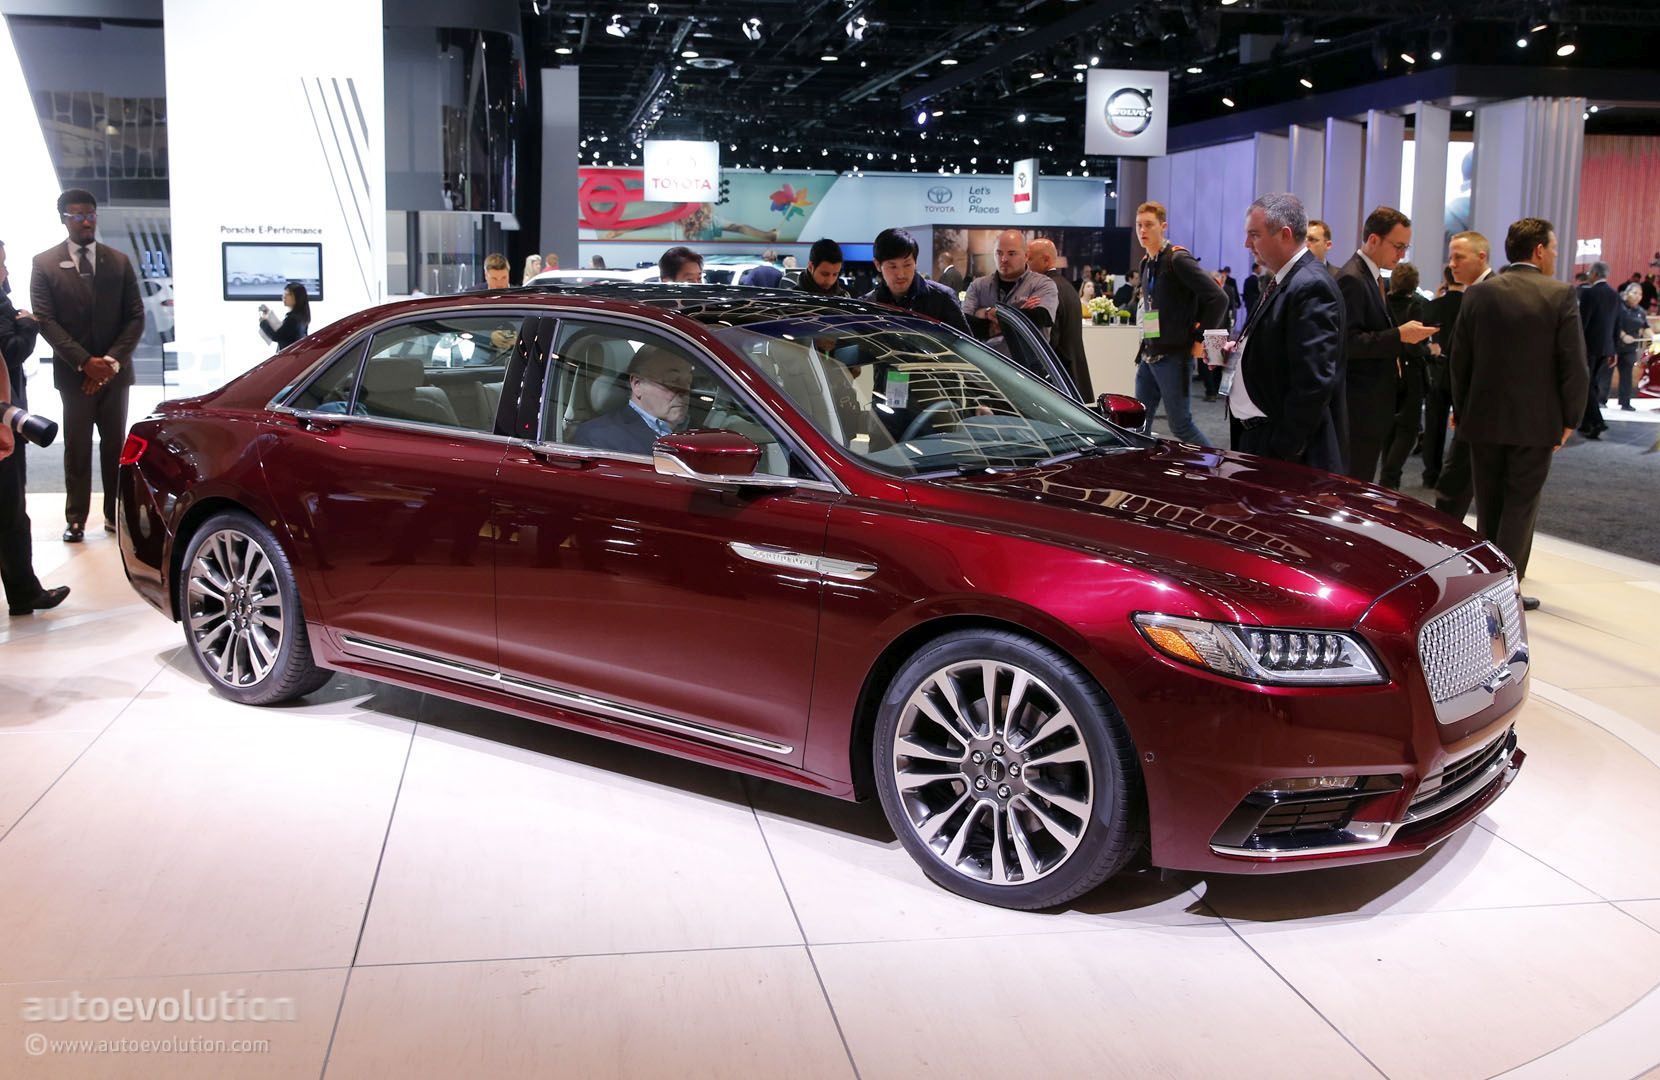 2017 Lincoln Continental Shows 400 HP 400 LB FT V6 In